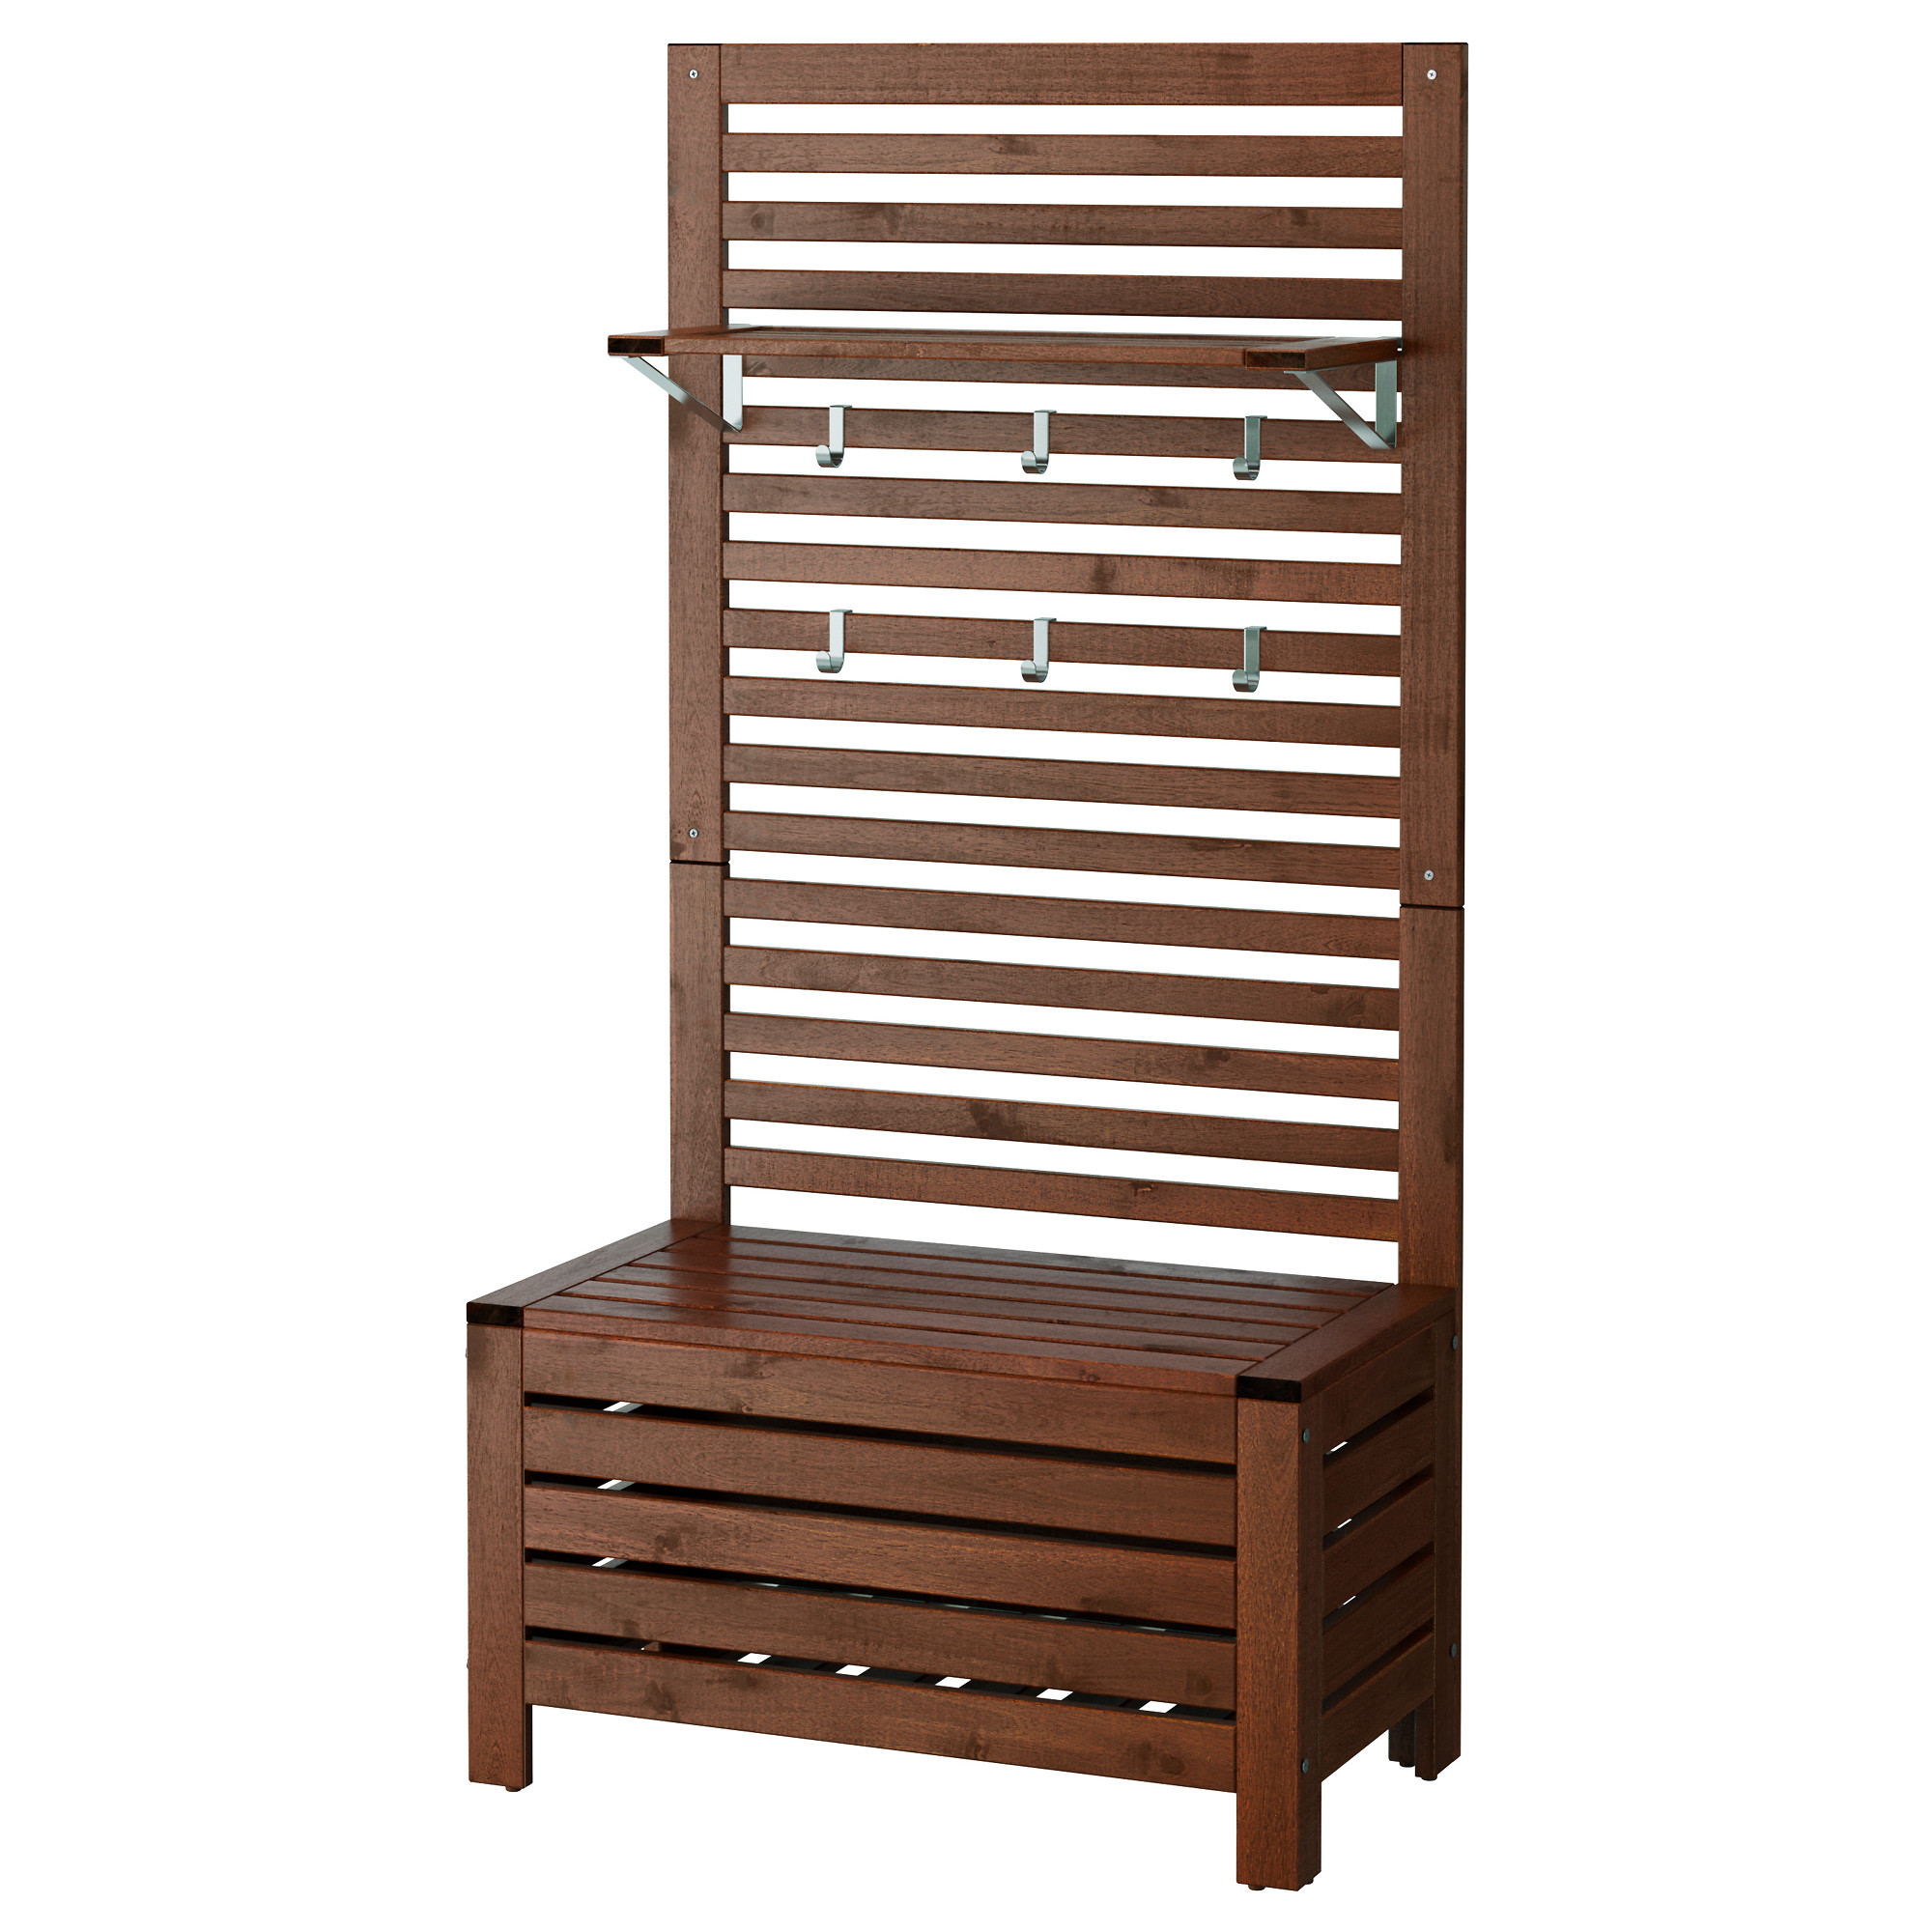 Outdoor storage furniture IKEA